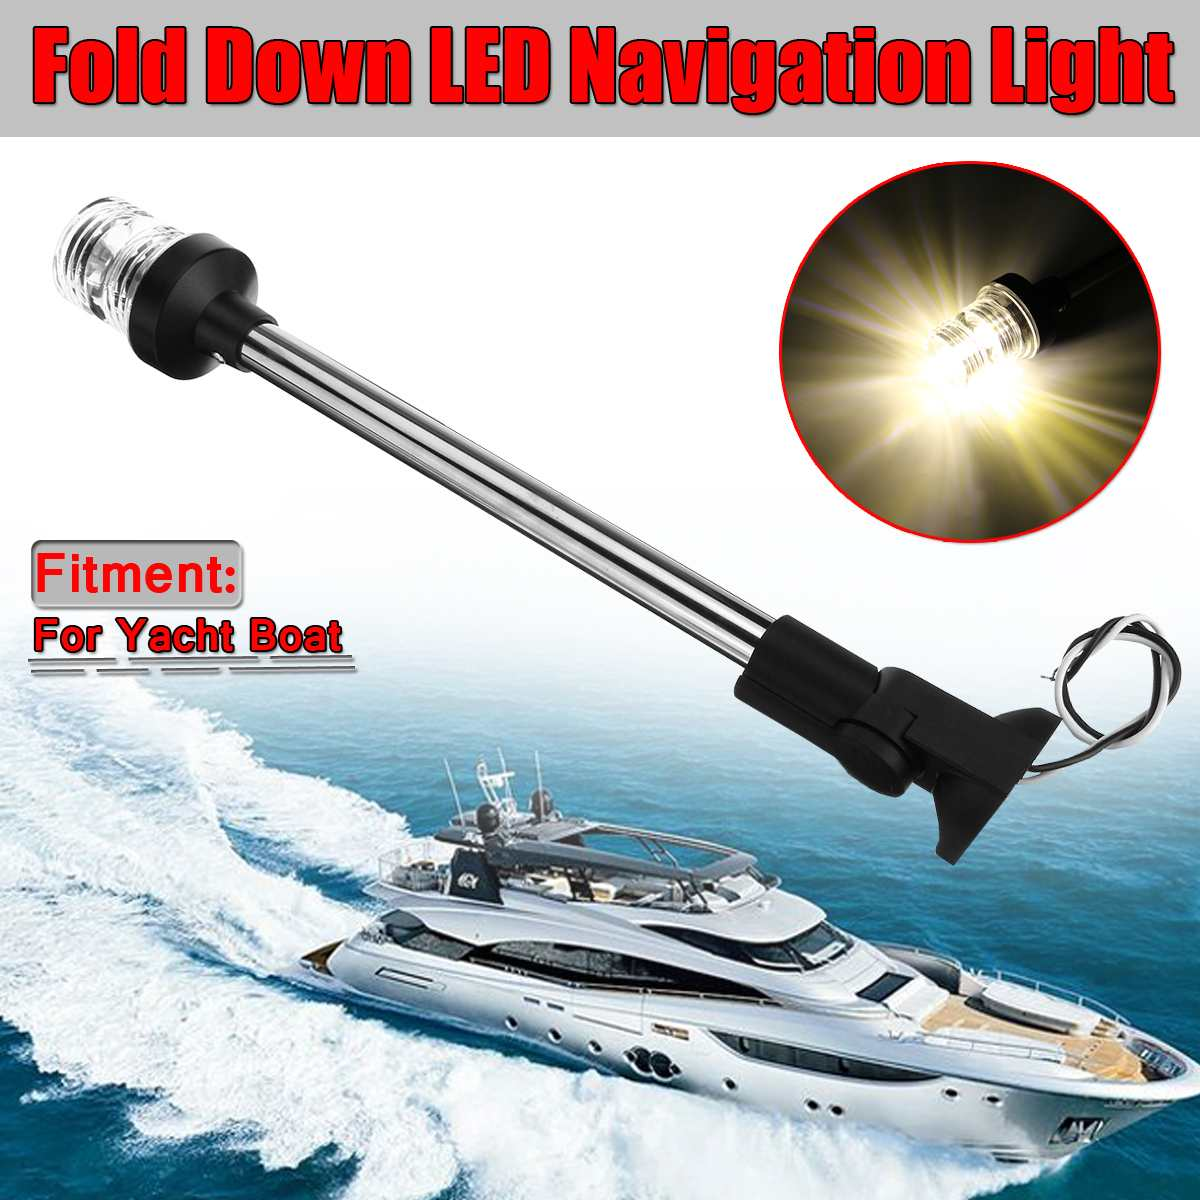 New 12-24V 16inch Pactrade Fold Down Universal LED Navigation Lights Marine Boat Rvs Stern Anchor Light Boat Transom Light image